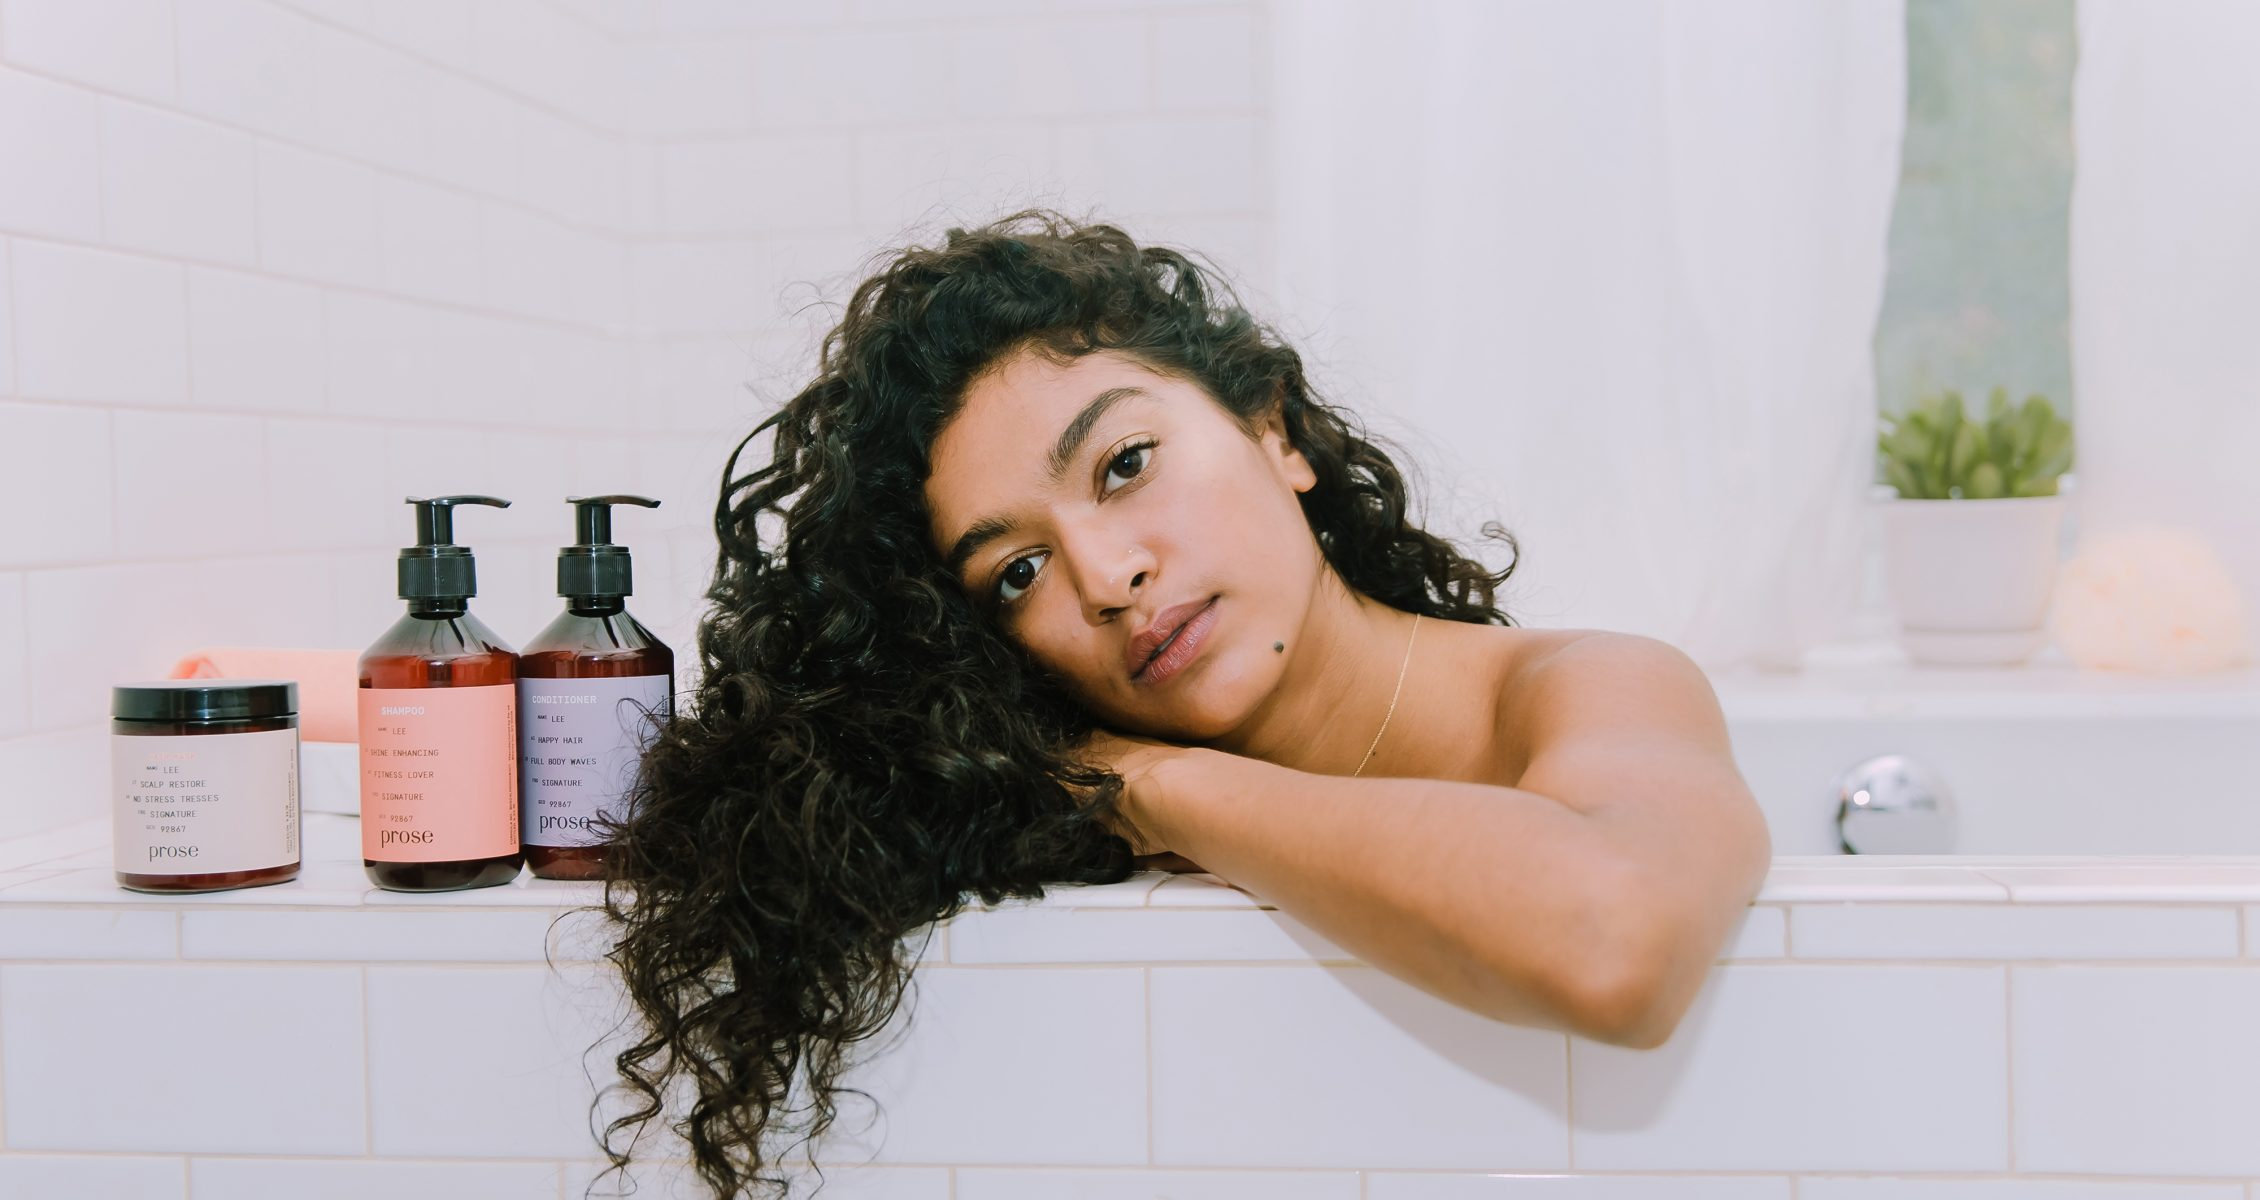 Woman with brown, curly hair in the bathtub with her Prose products